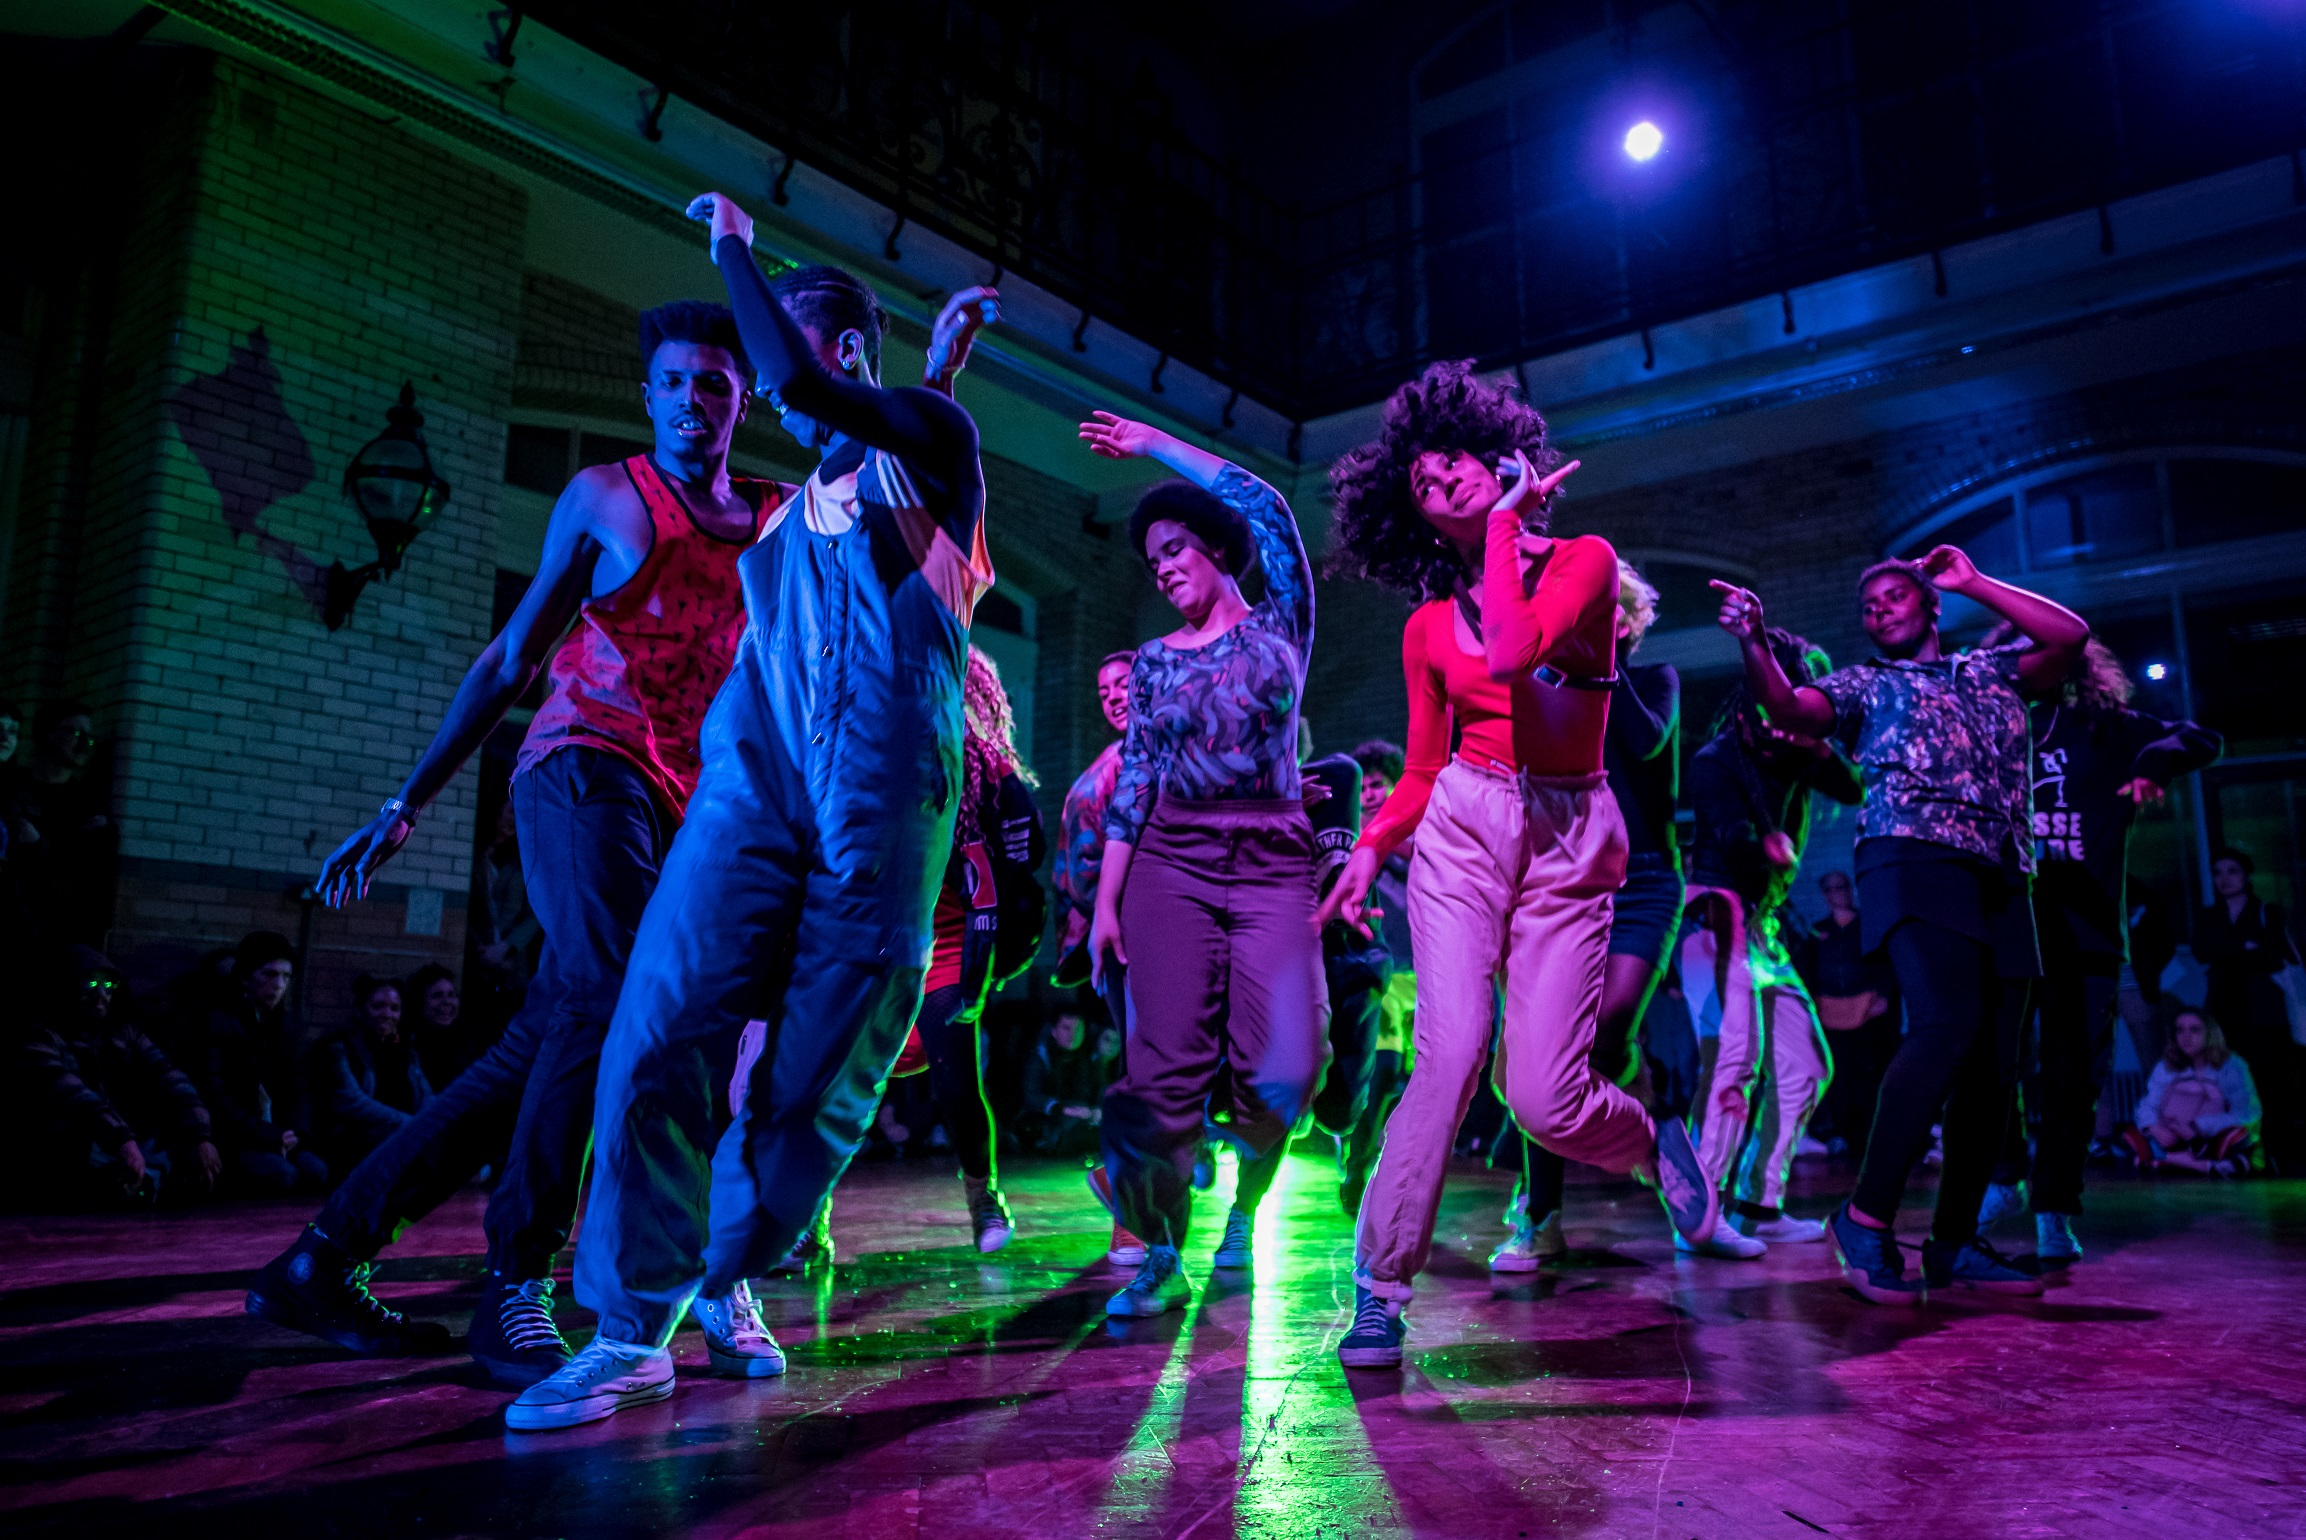 Image: When It Breaks It Burns. A group of young people dancing under multi-coloured lights. Photo by JMA Photography.